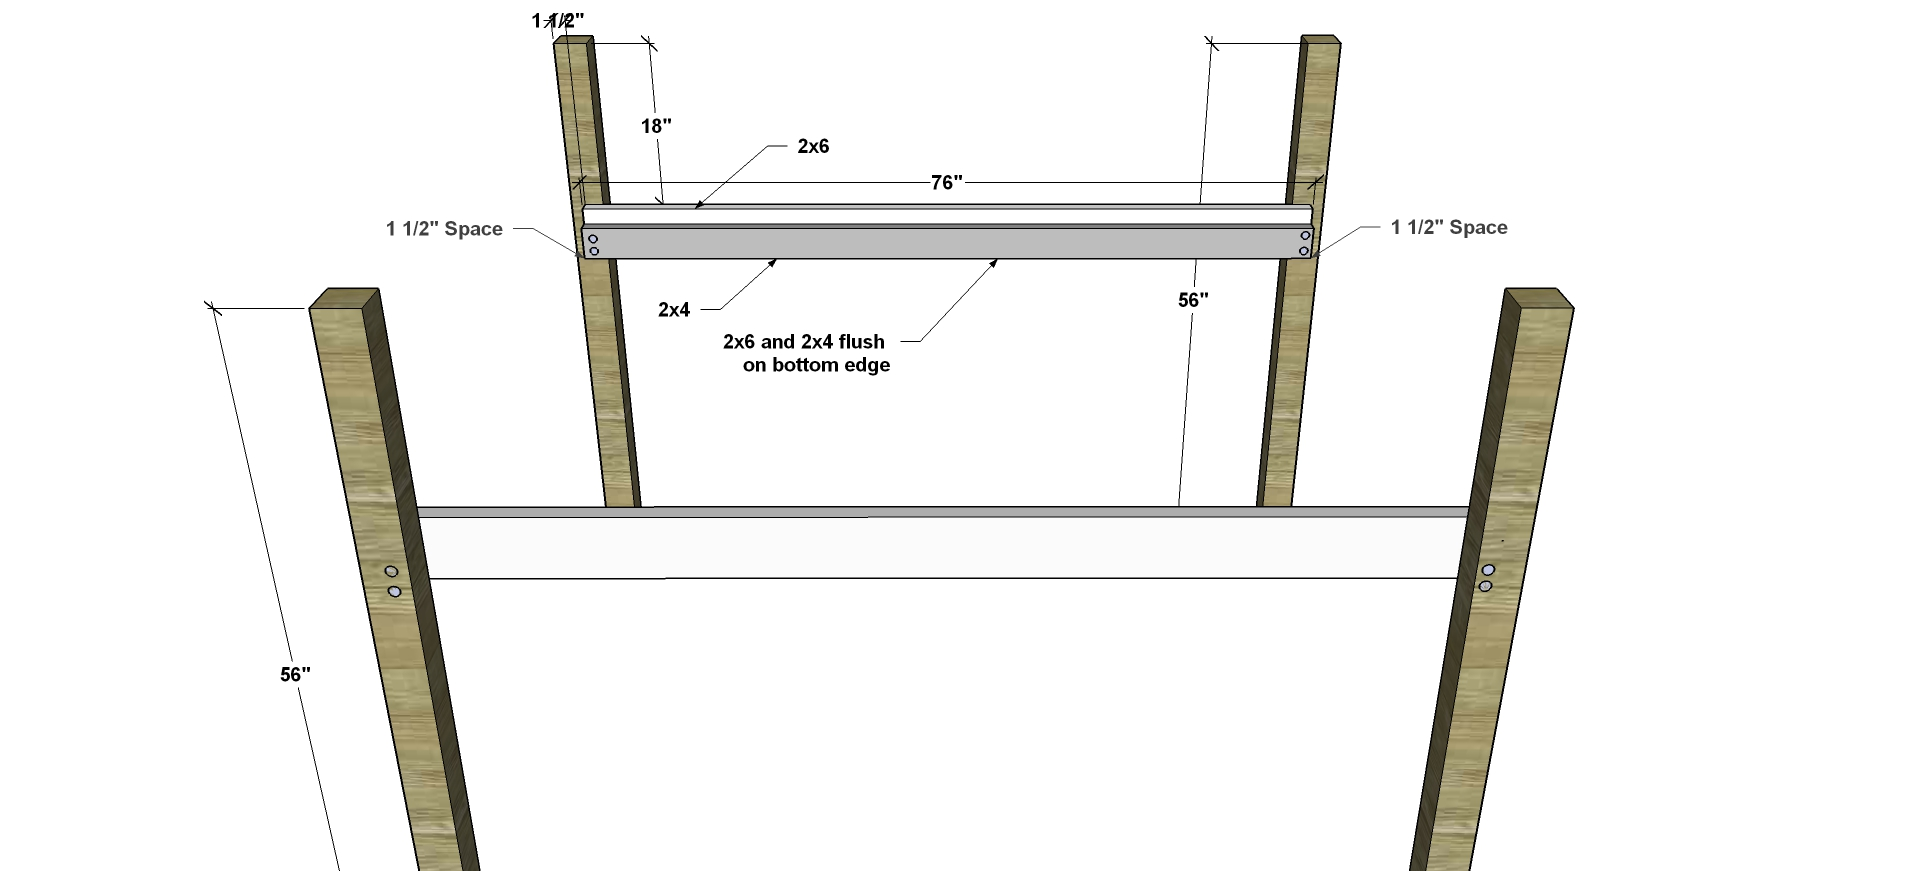 free woodworking plans to build a full sized low loft bunk the free woodworking plans to build a full sized low loft bunk